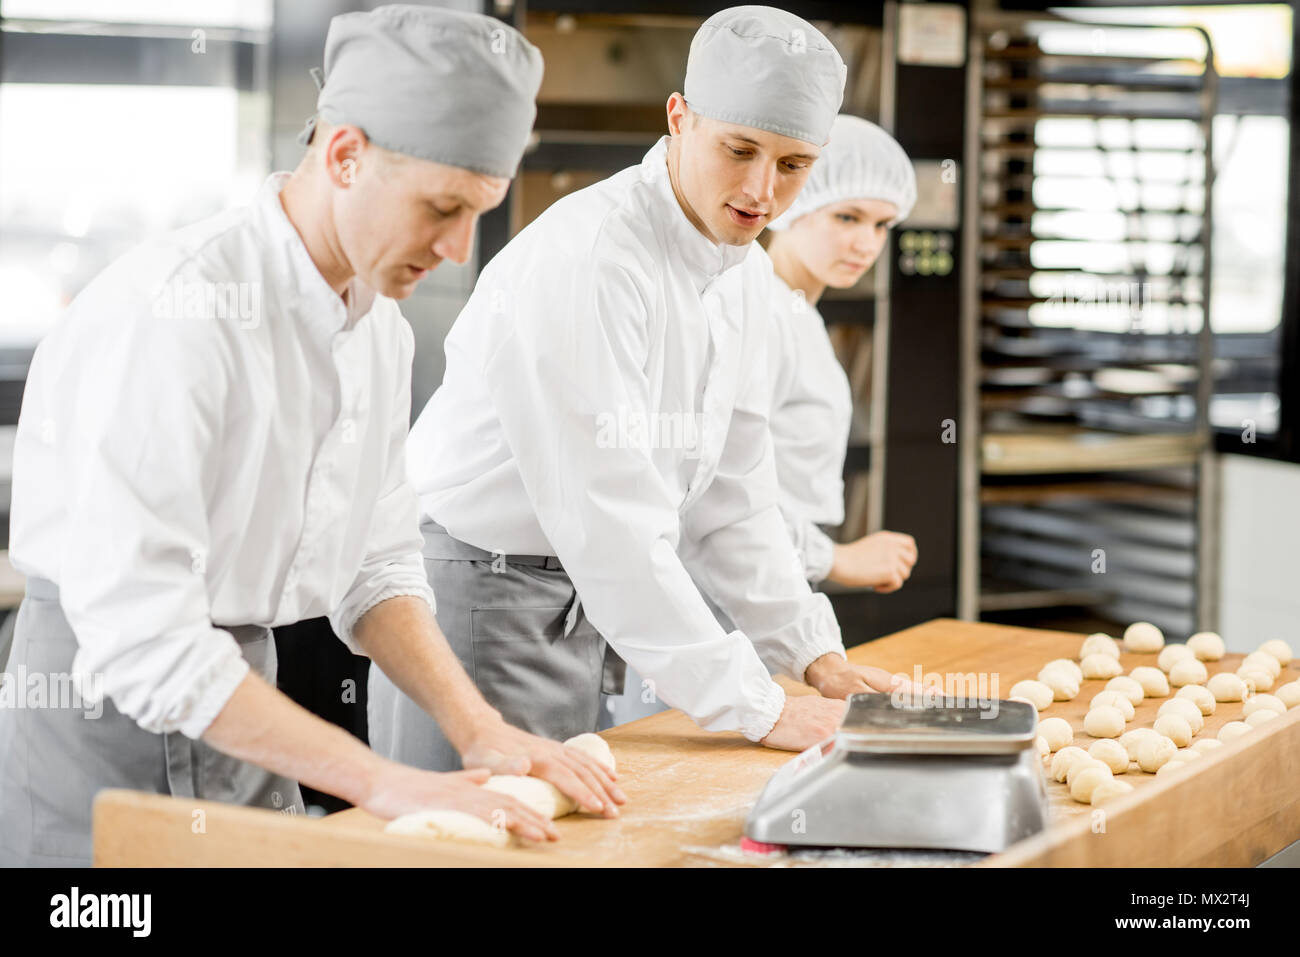 Bakers forming dough for baking at the manufacturing - Stock Image